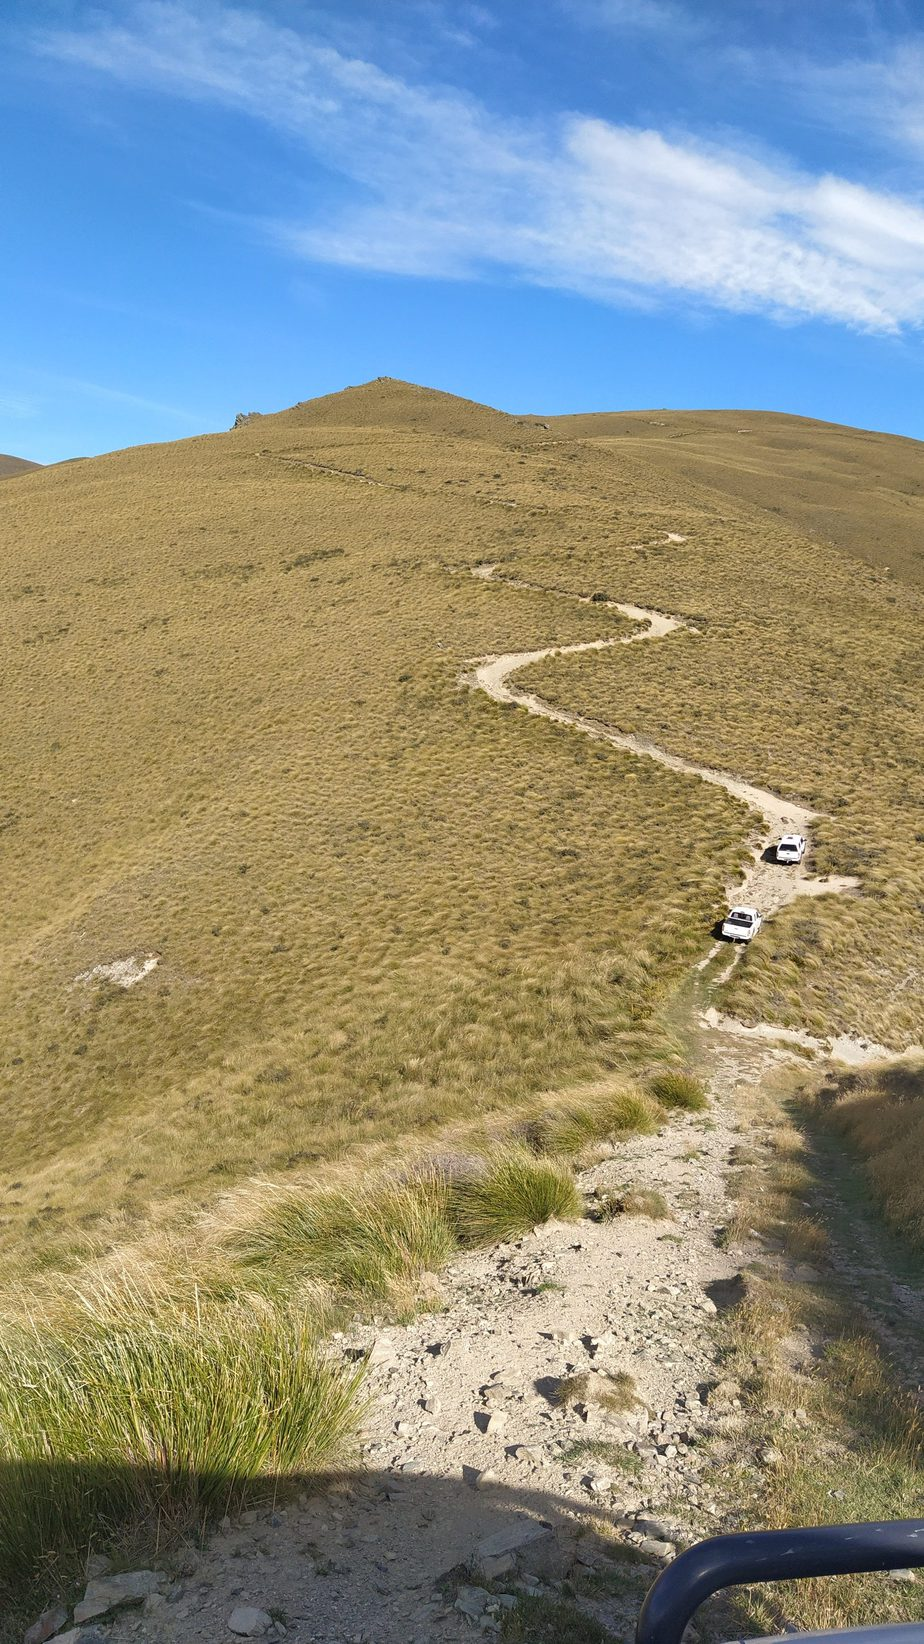 Following the 4WD track in the Dunstan Mountains, Jan 2021. Photo by Heidi Meudt @ Te Papa.